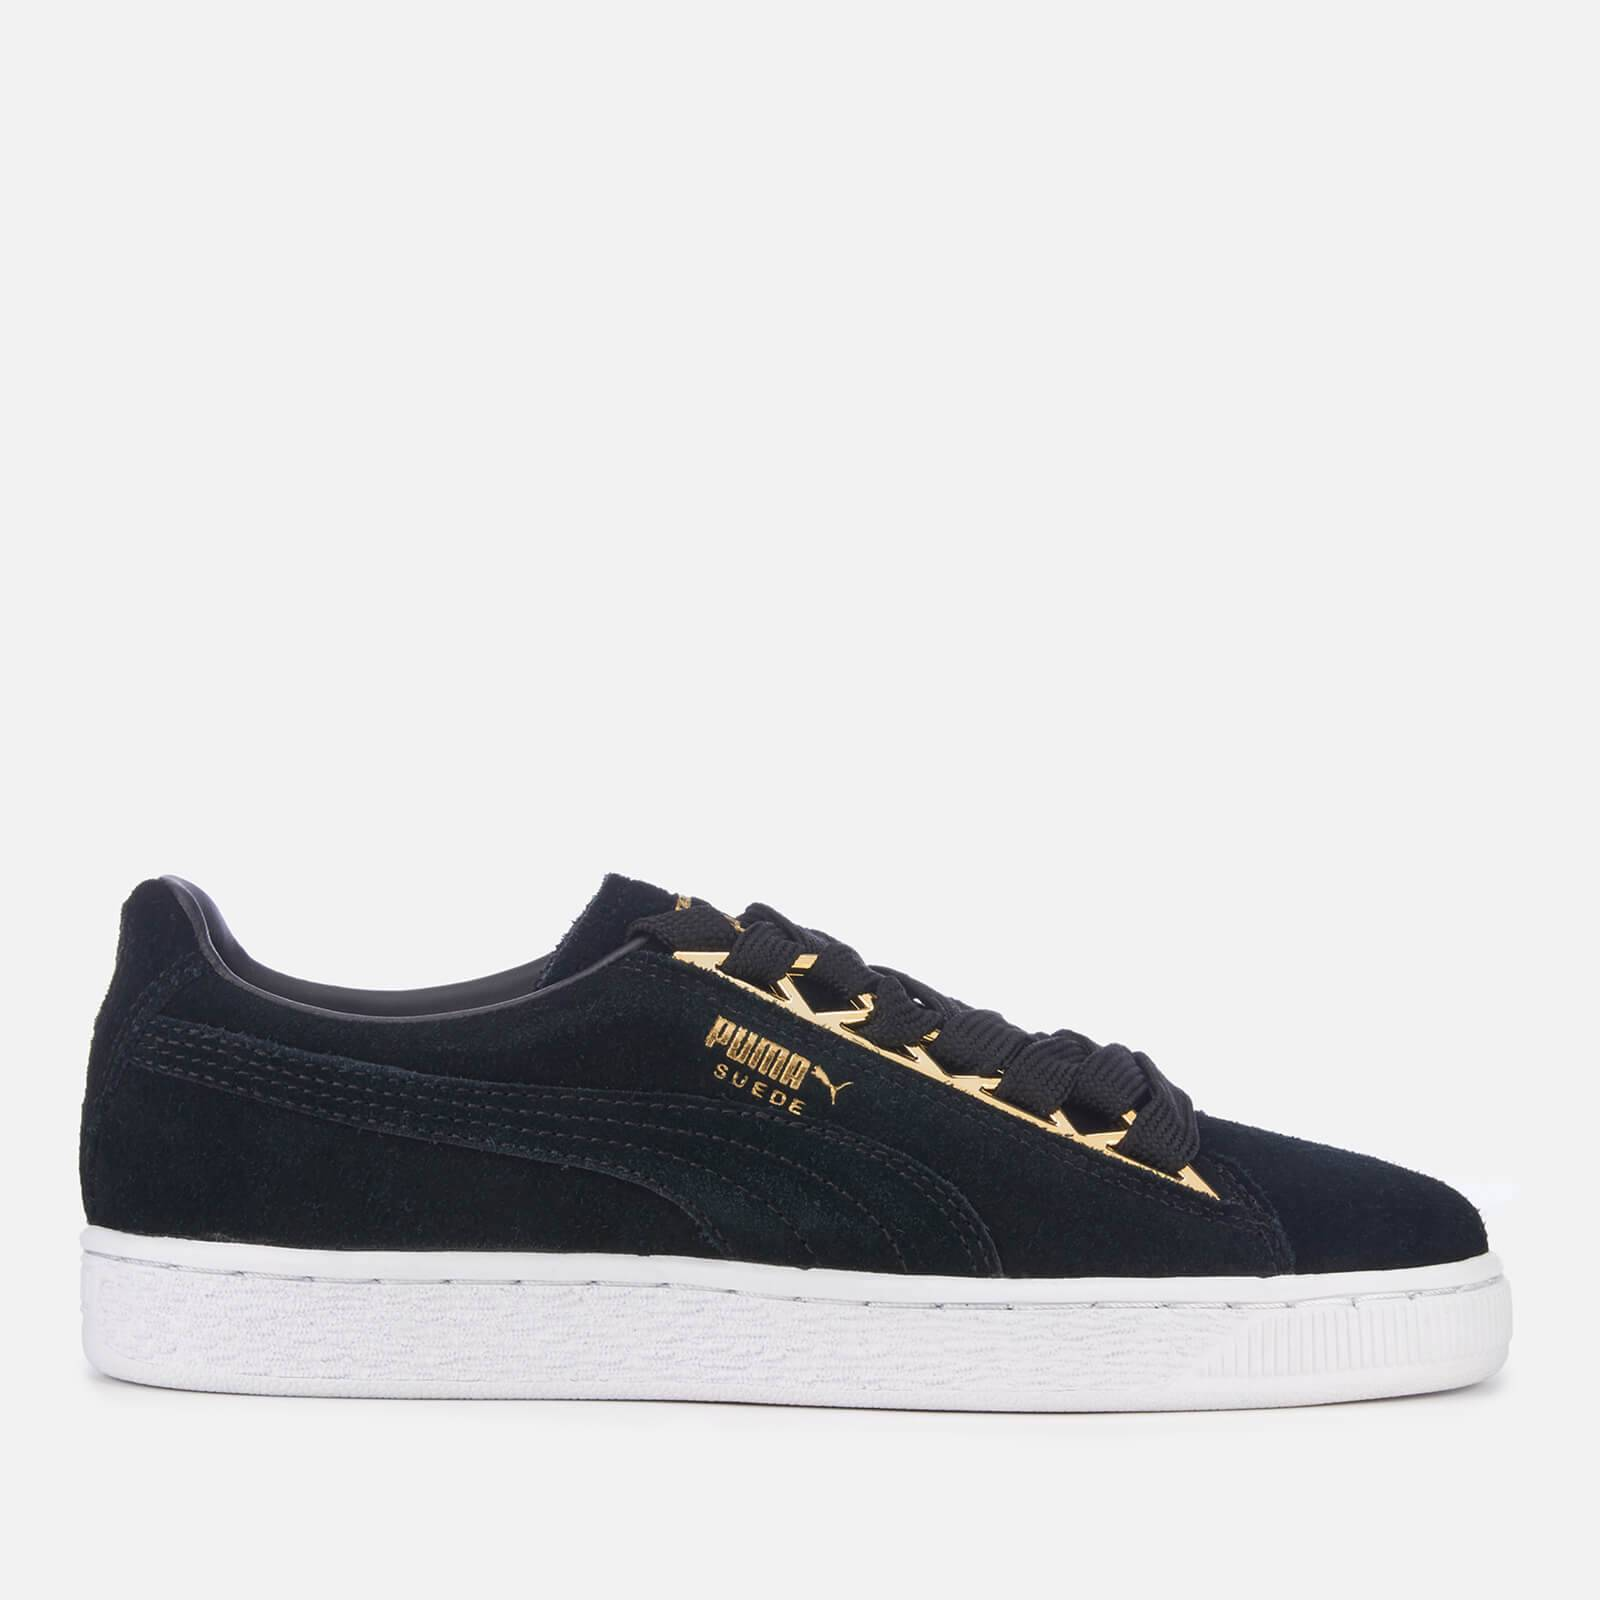 Puma Women's Suede Jewel Metallic Trainers - Puma Black - UK 7 - Black